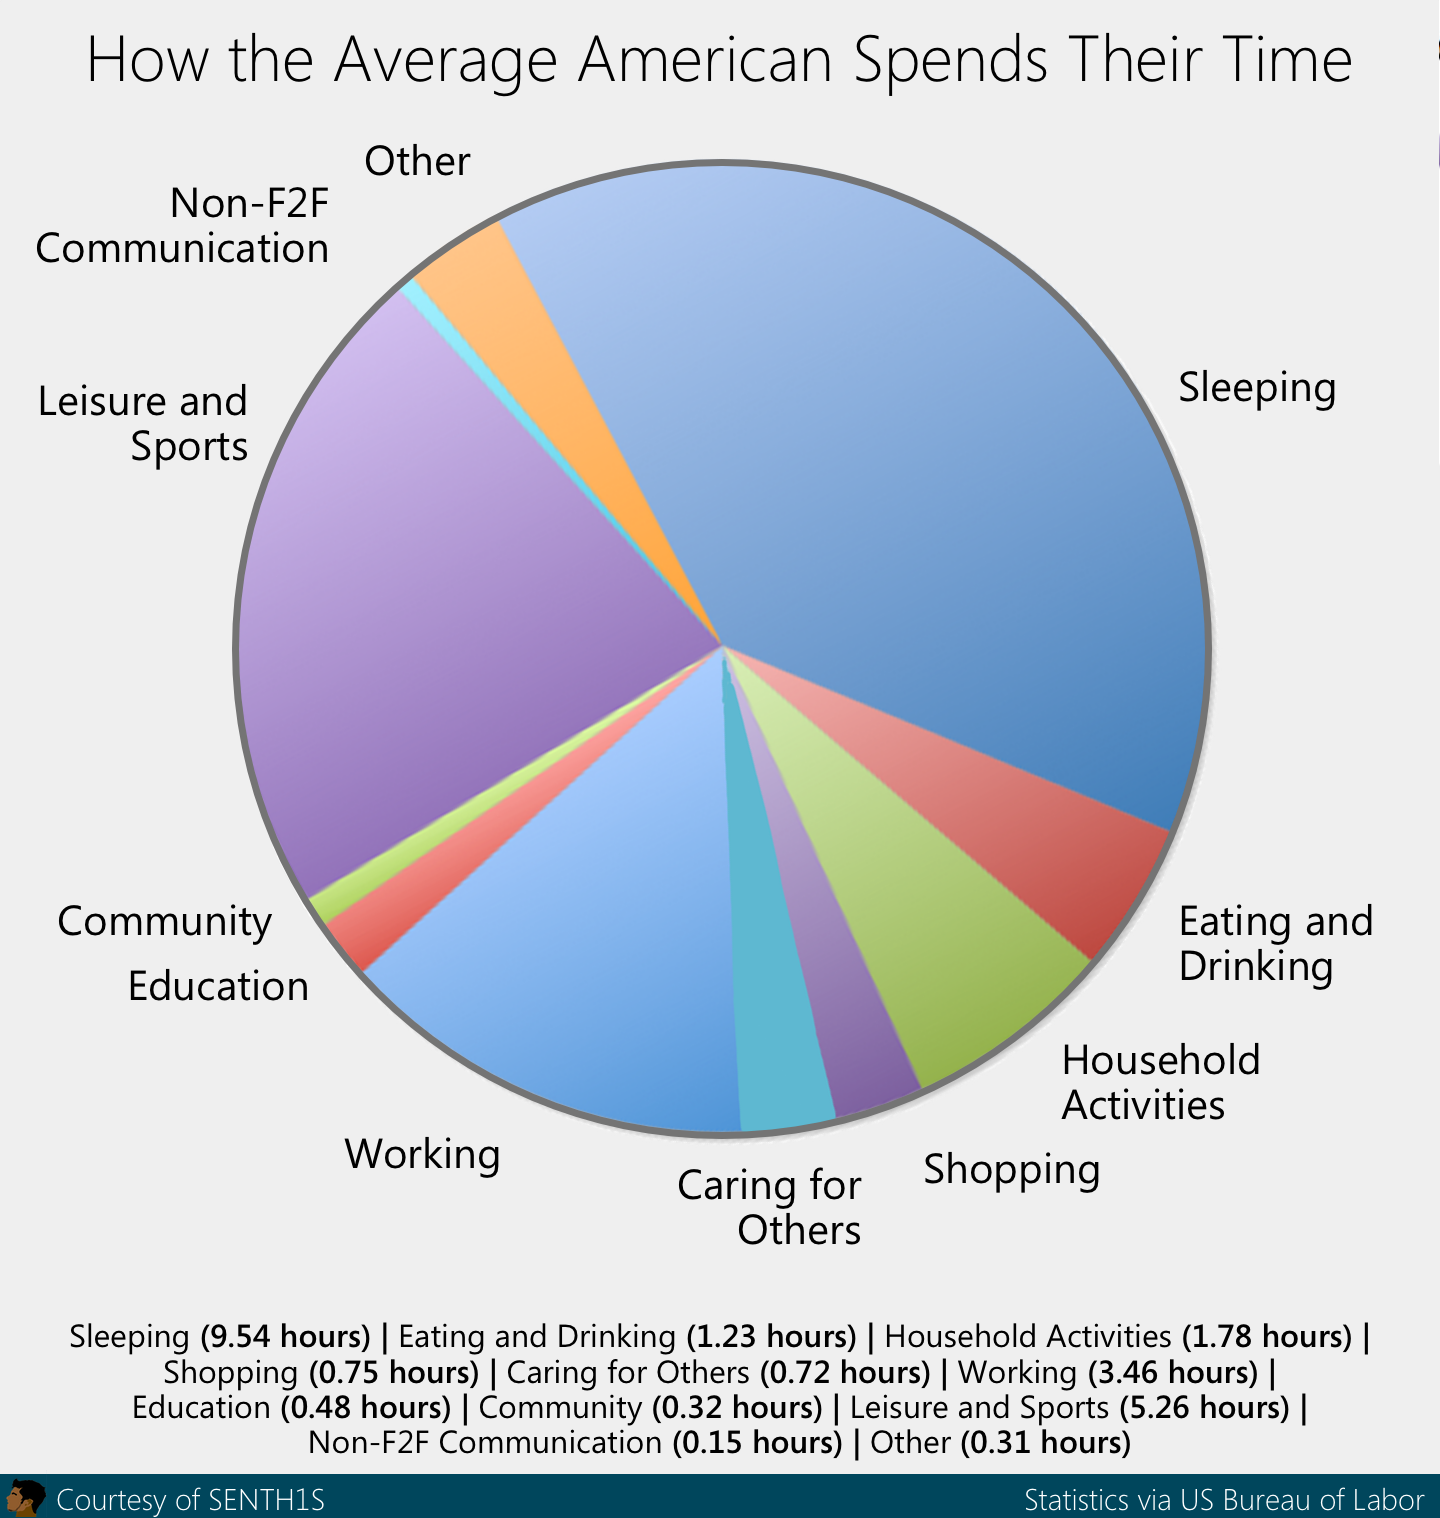 how do you spend your leisure time??